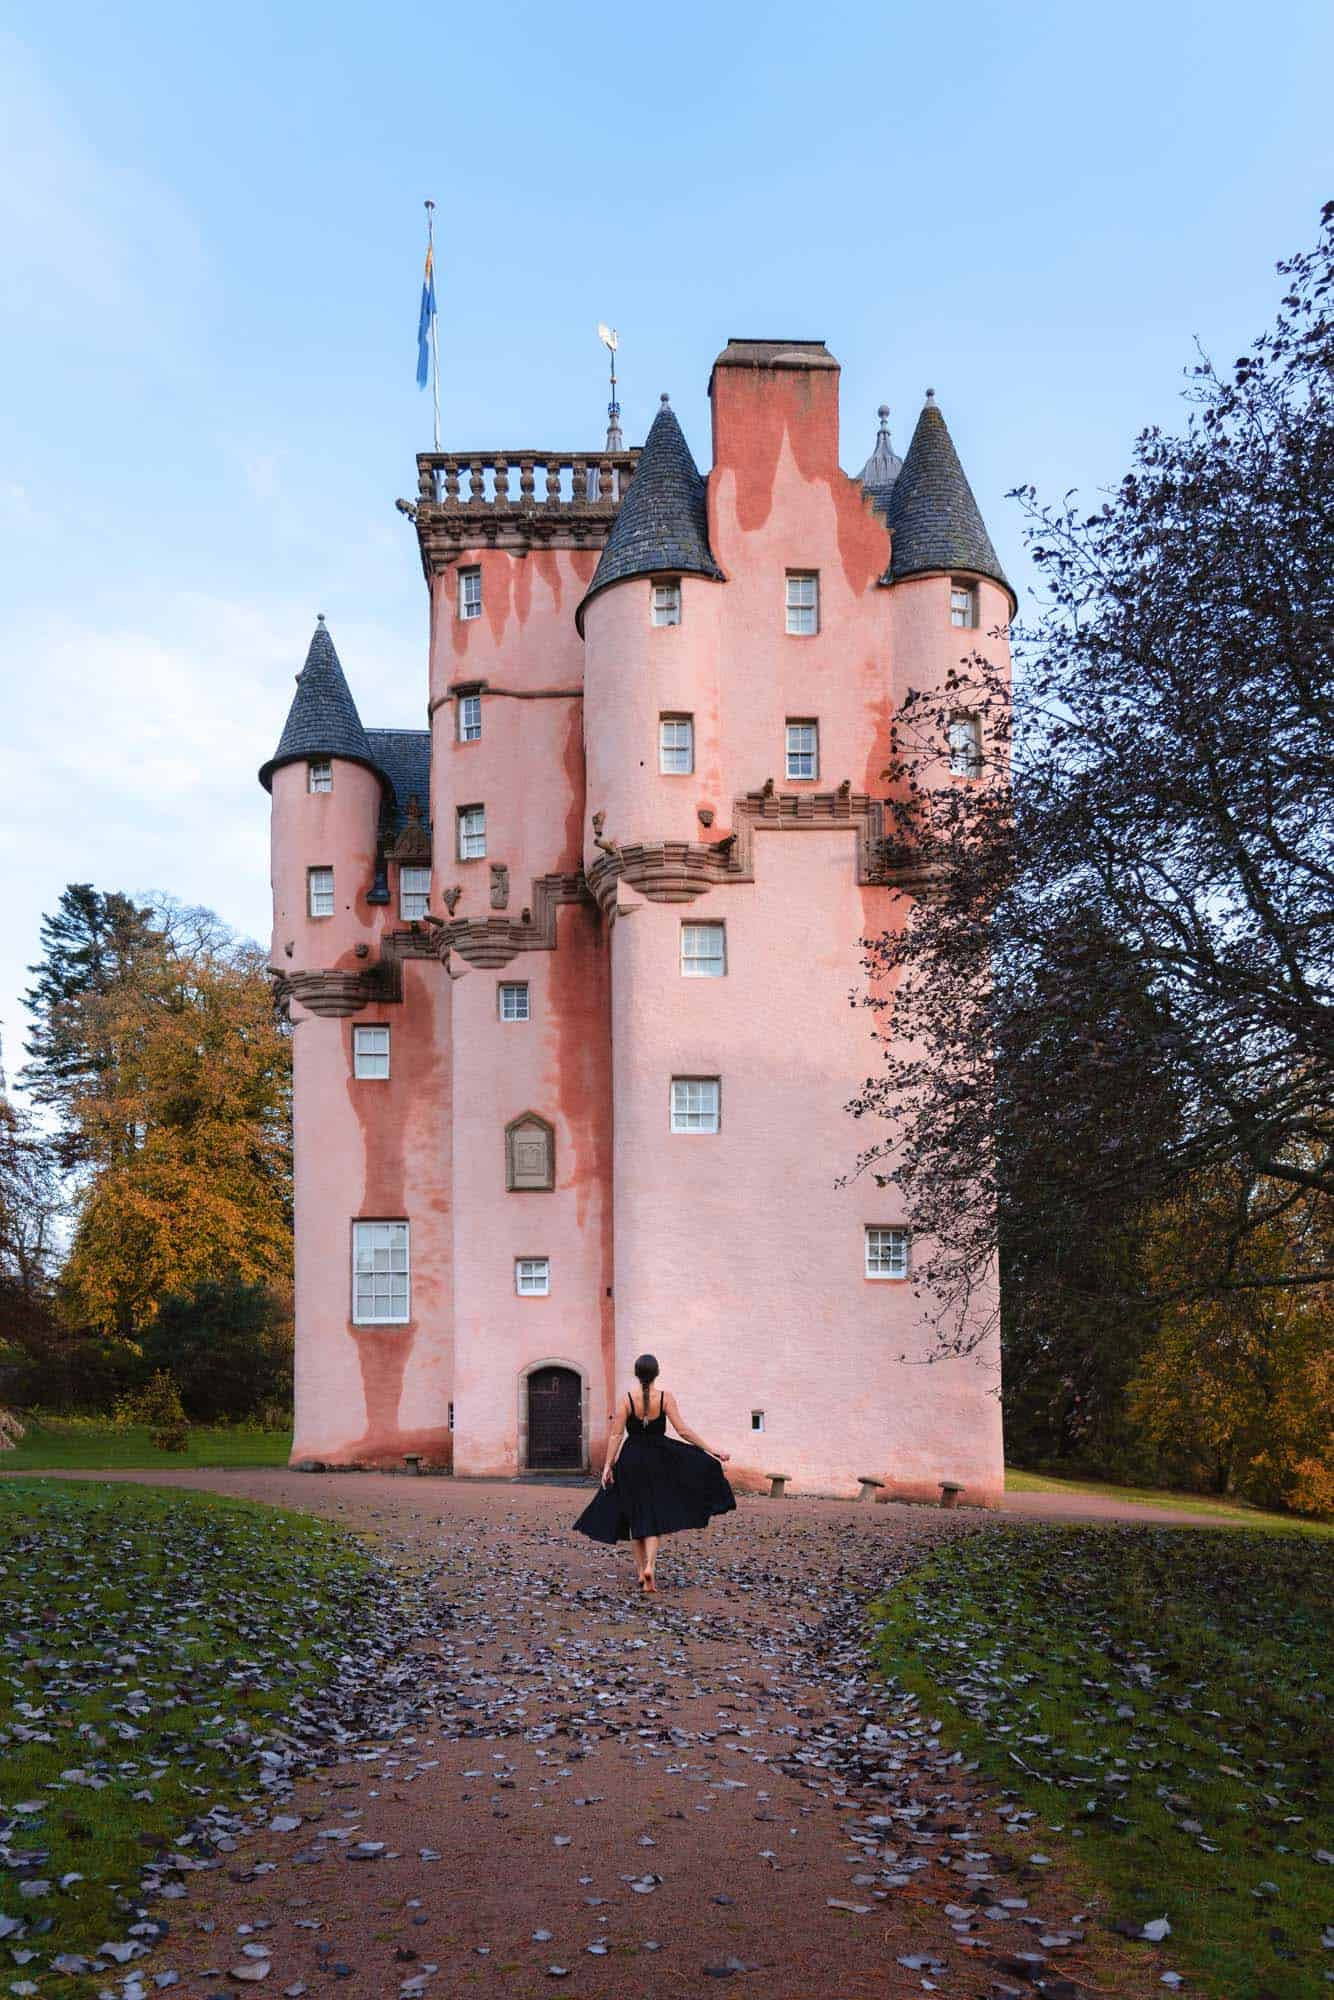 Standing in front of one of the best castles in Scotland; Craigievar Castle, aka the Cinderella Castle.